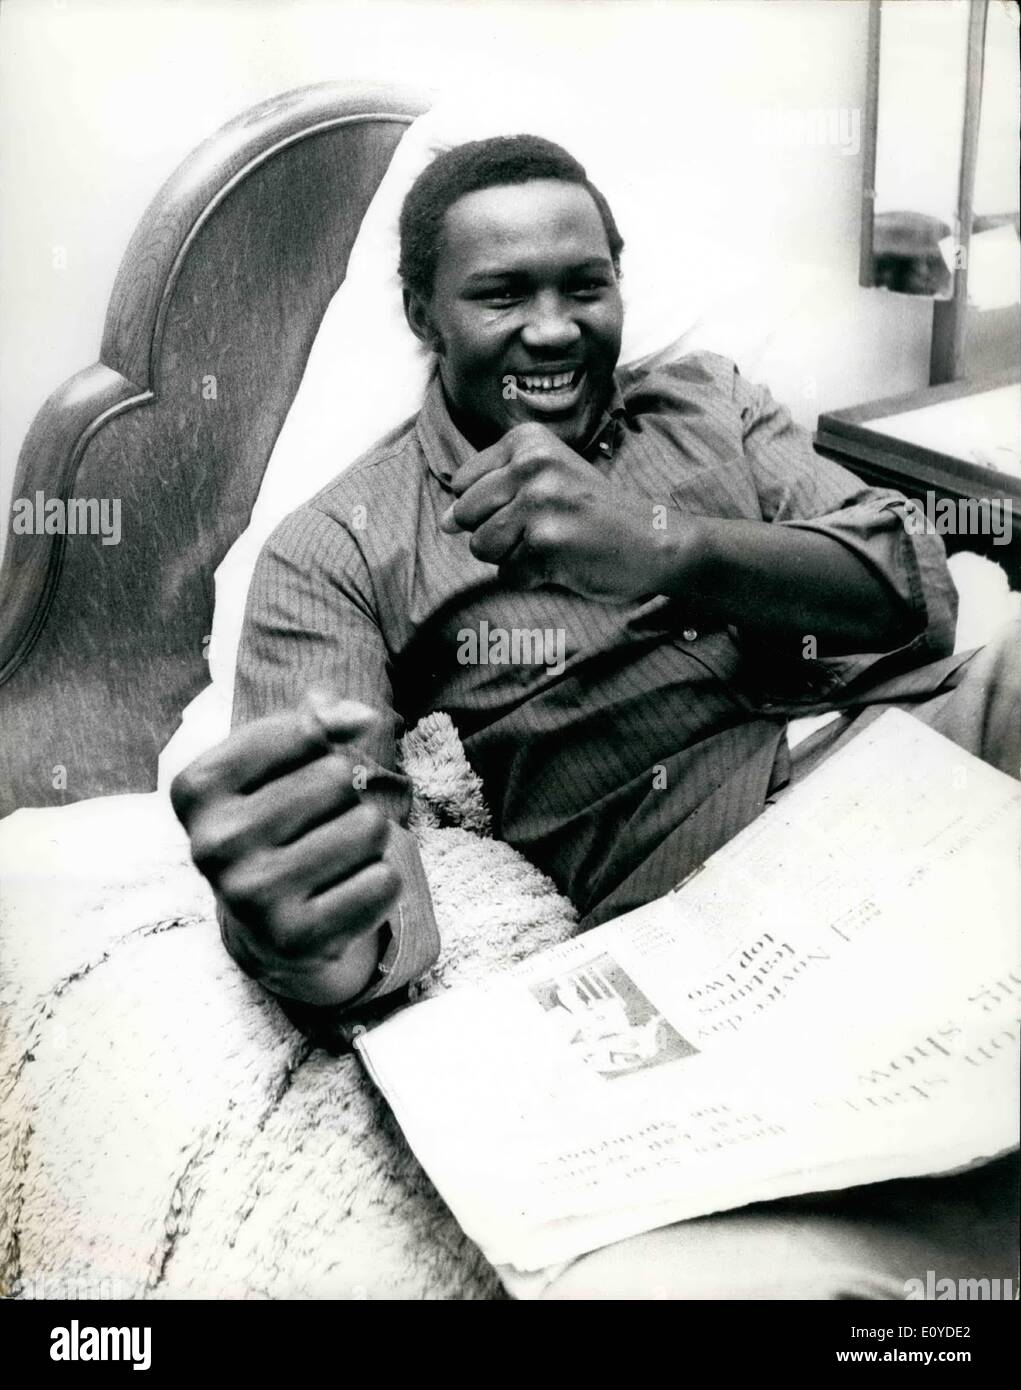 Dec. 12, 1969 - Charles Polite The American Heavyweight Arrives For His Fight With Joe Bugner: Charlie Polite, the American Negro heavyweight, from Springfield, Mass, who had the privilege of facing world champions, Joe Frazier, and Bob Foster and outside Buster Mathis, has arrived here in preparation for his contest against Britain's 19-year-old heavyweight, Joe Bugner, at the Albert Hall on December 9th. Photo Shows Charlie Polite is pictured relaxing on his bed at the Regent Palace Hotel Piccadilly today. - Stock Image